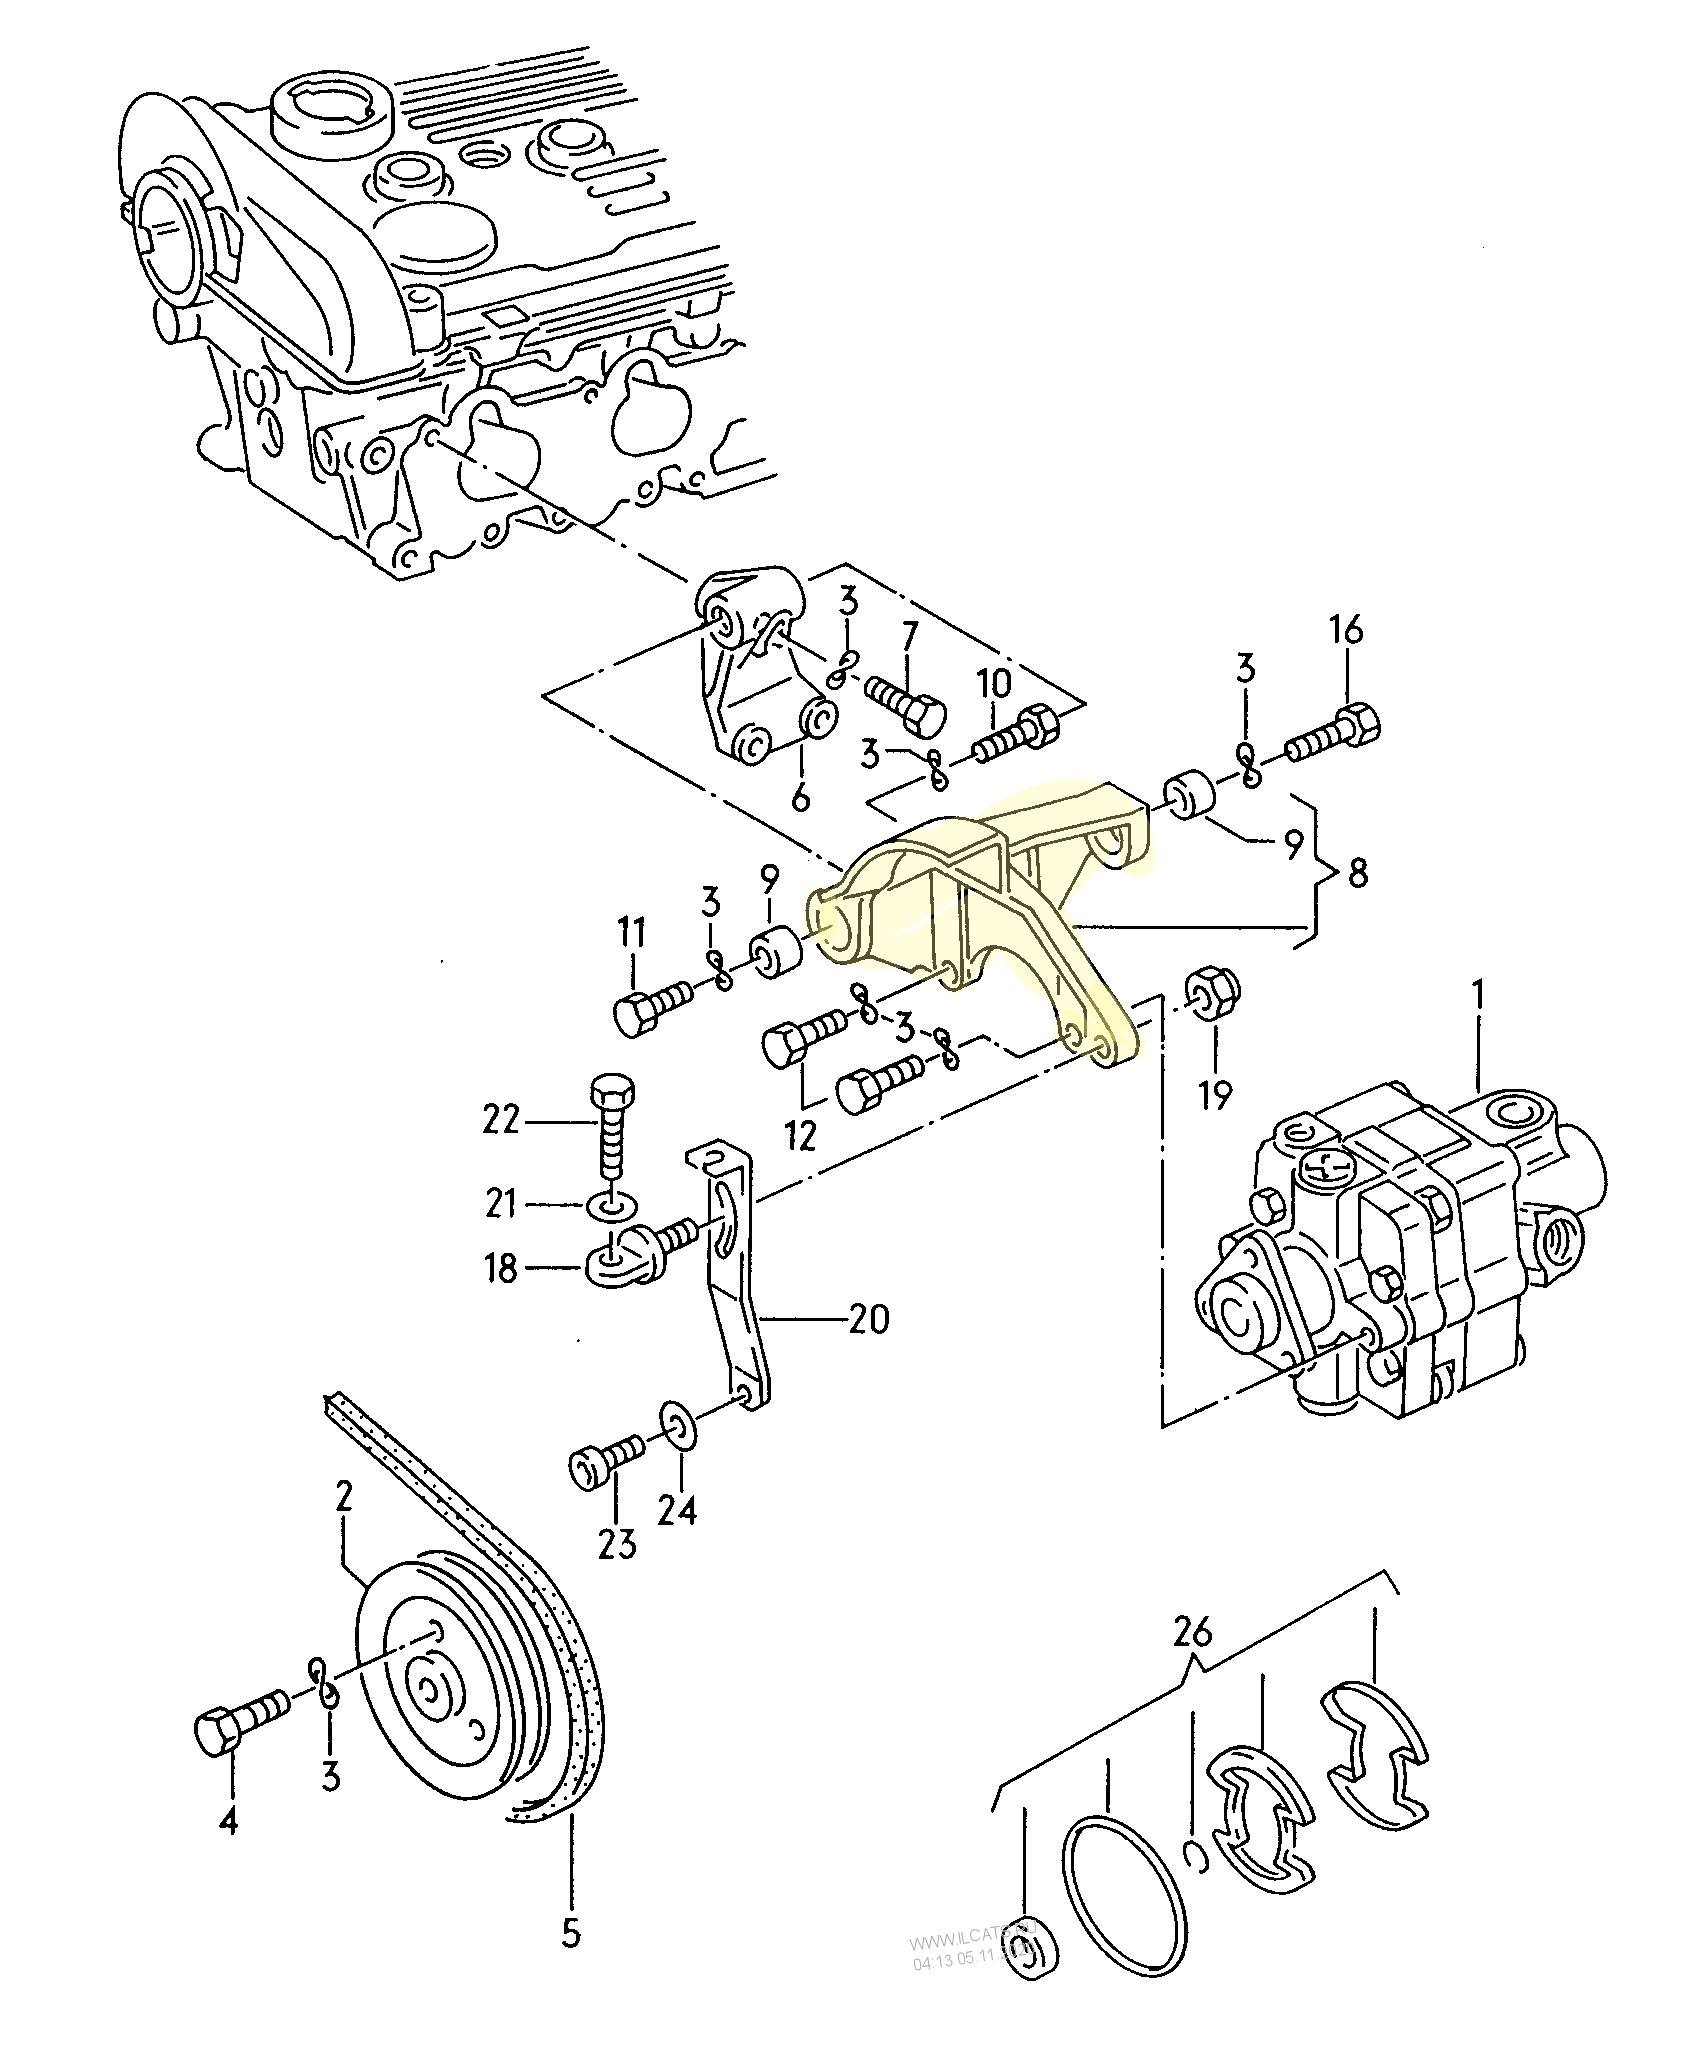 #8 power steering bracket.JPG